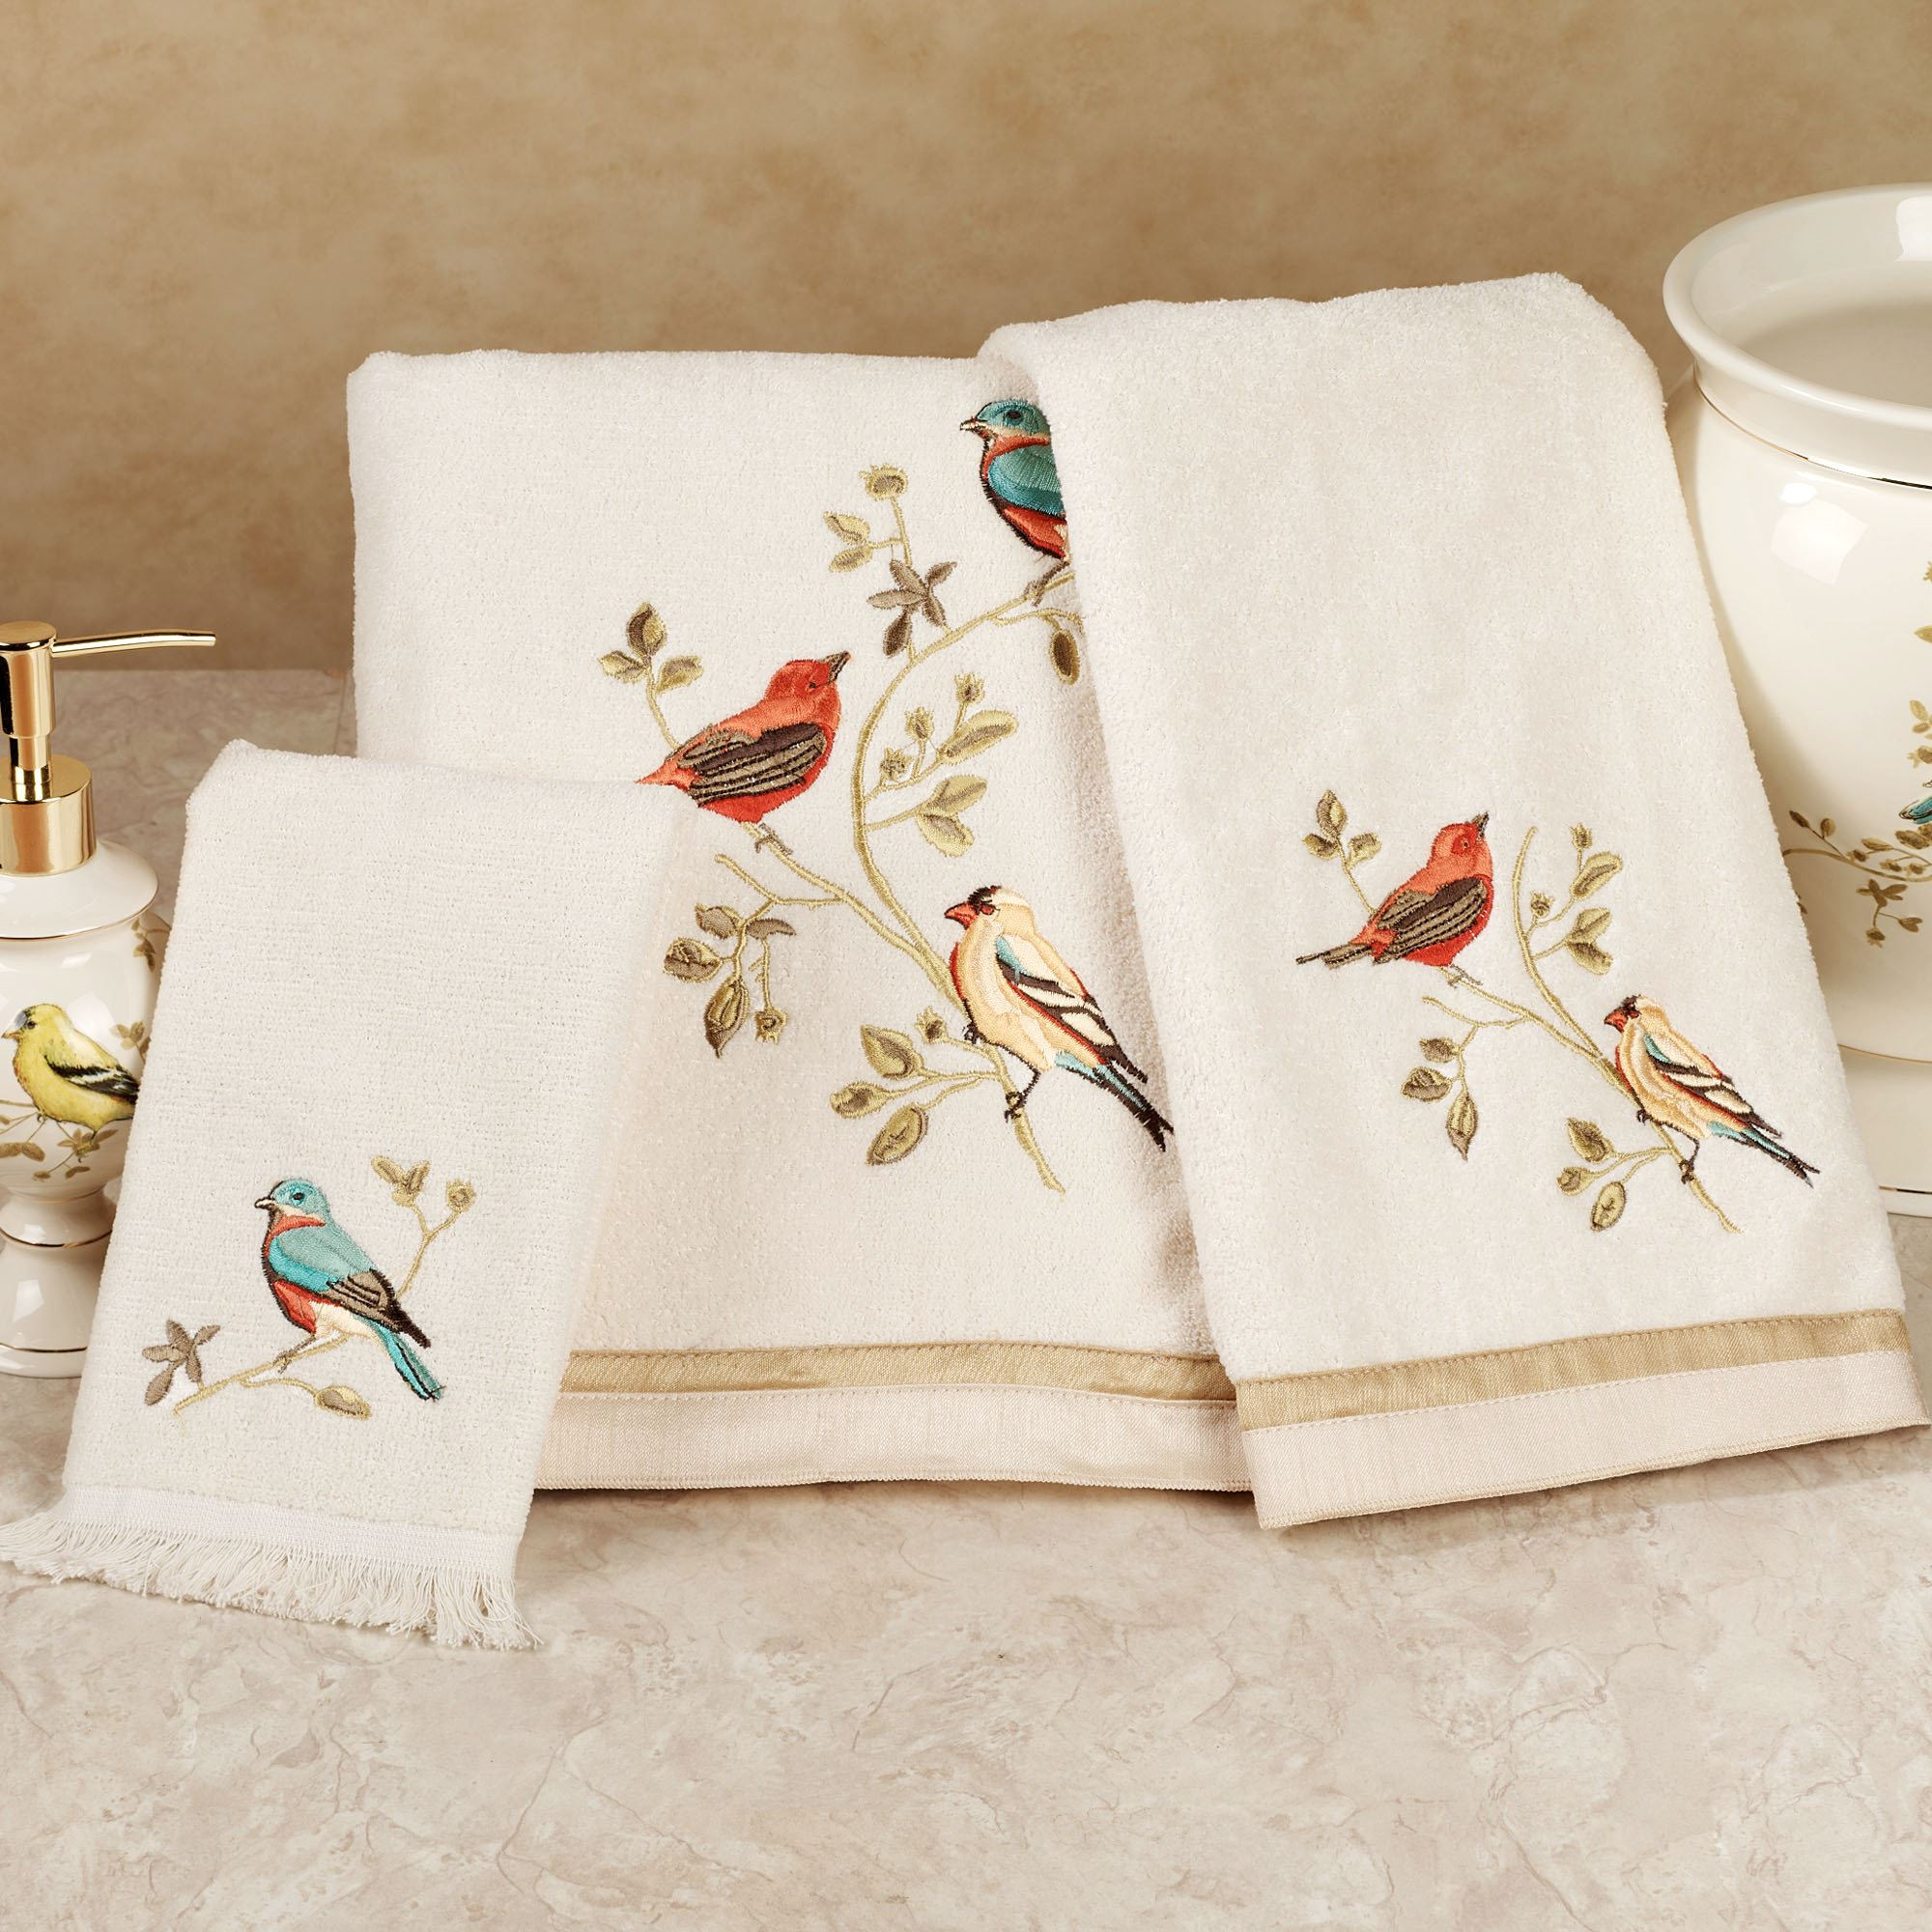 Gilded bird embroidered bath towel set for Bathroom ideas towels